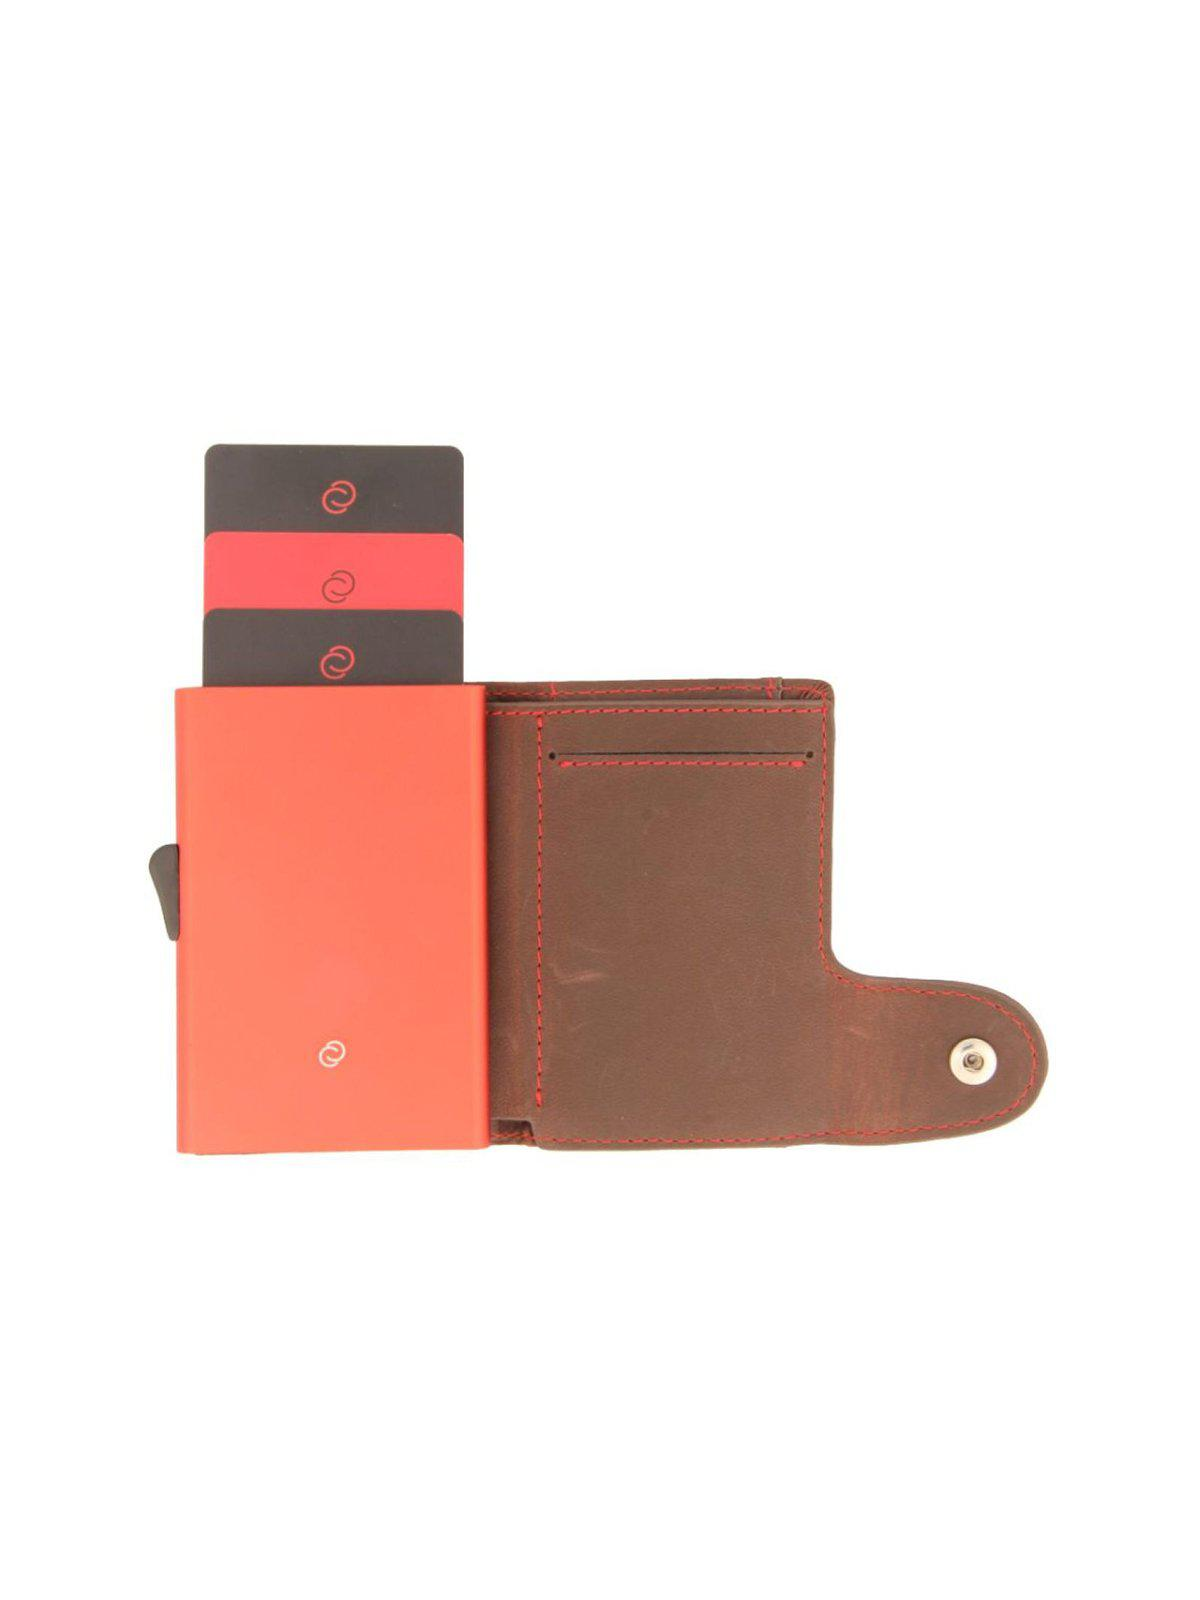 C-Secure Italian Leather RFID Wallet Auburn - MORE by Morello Indonesia